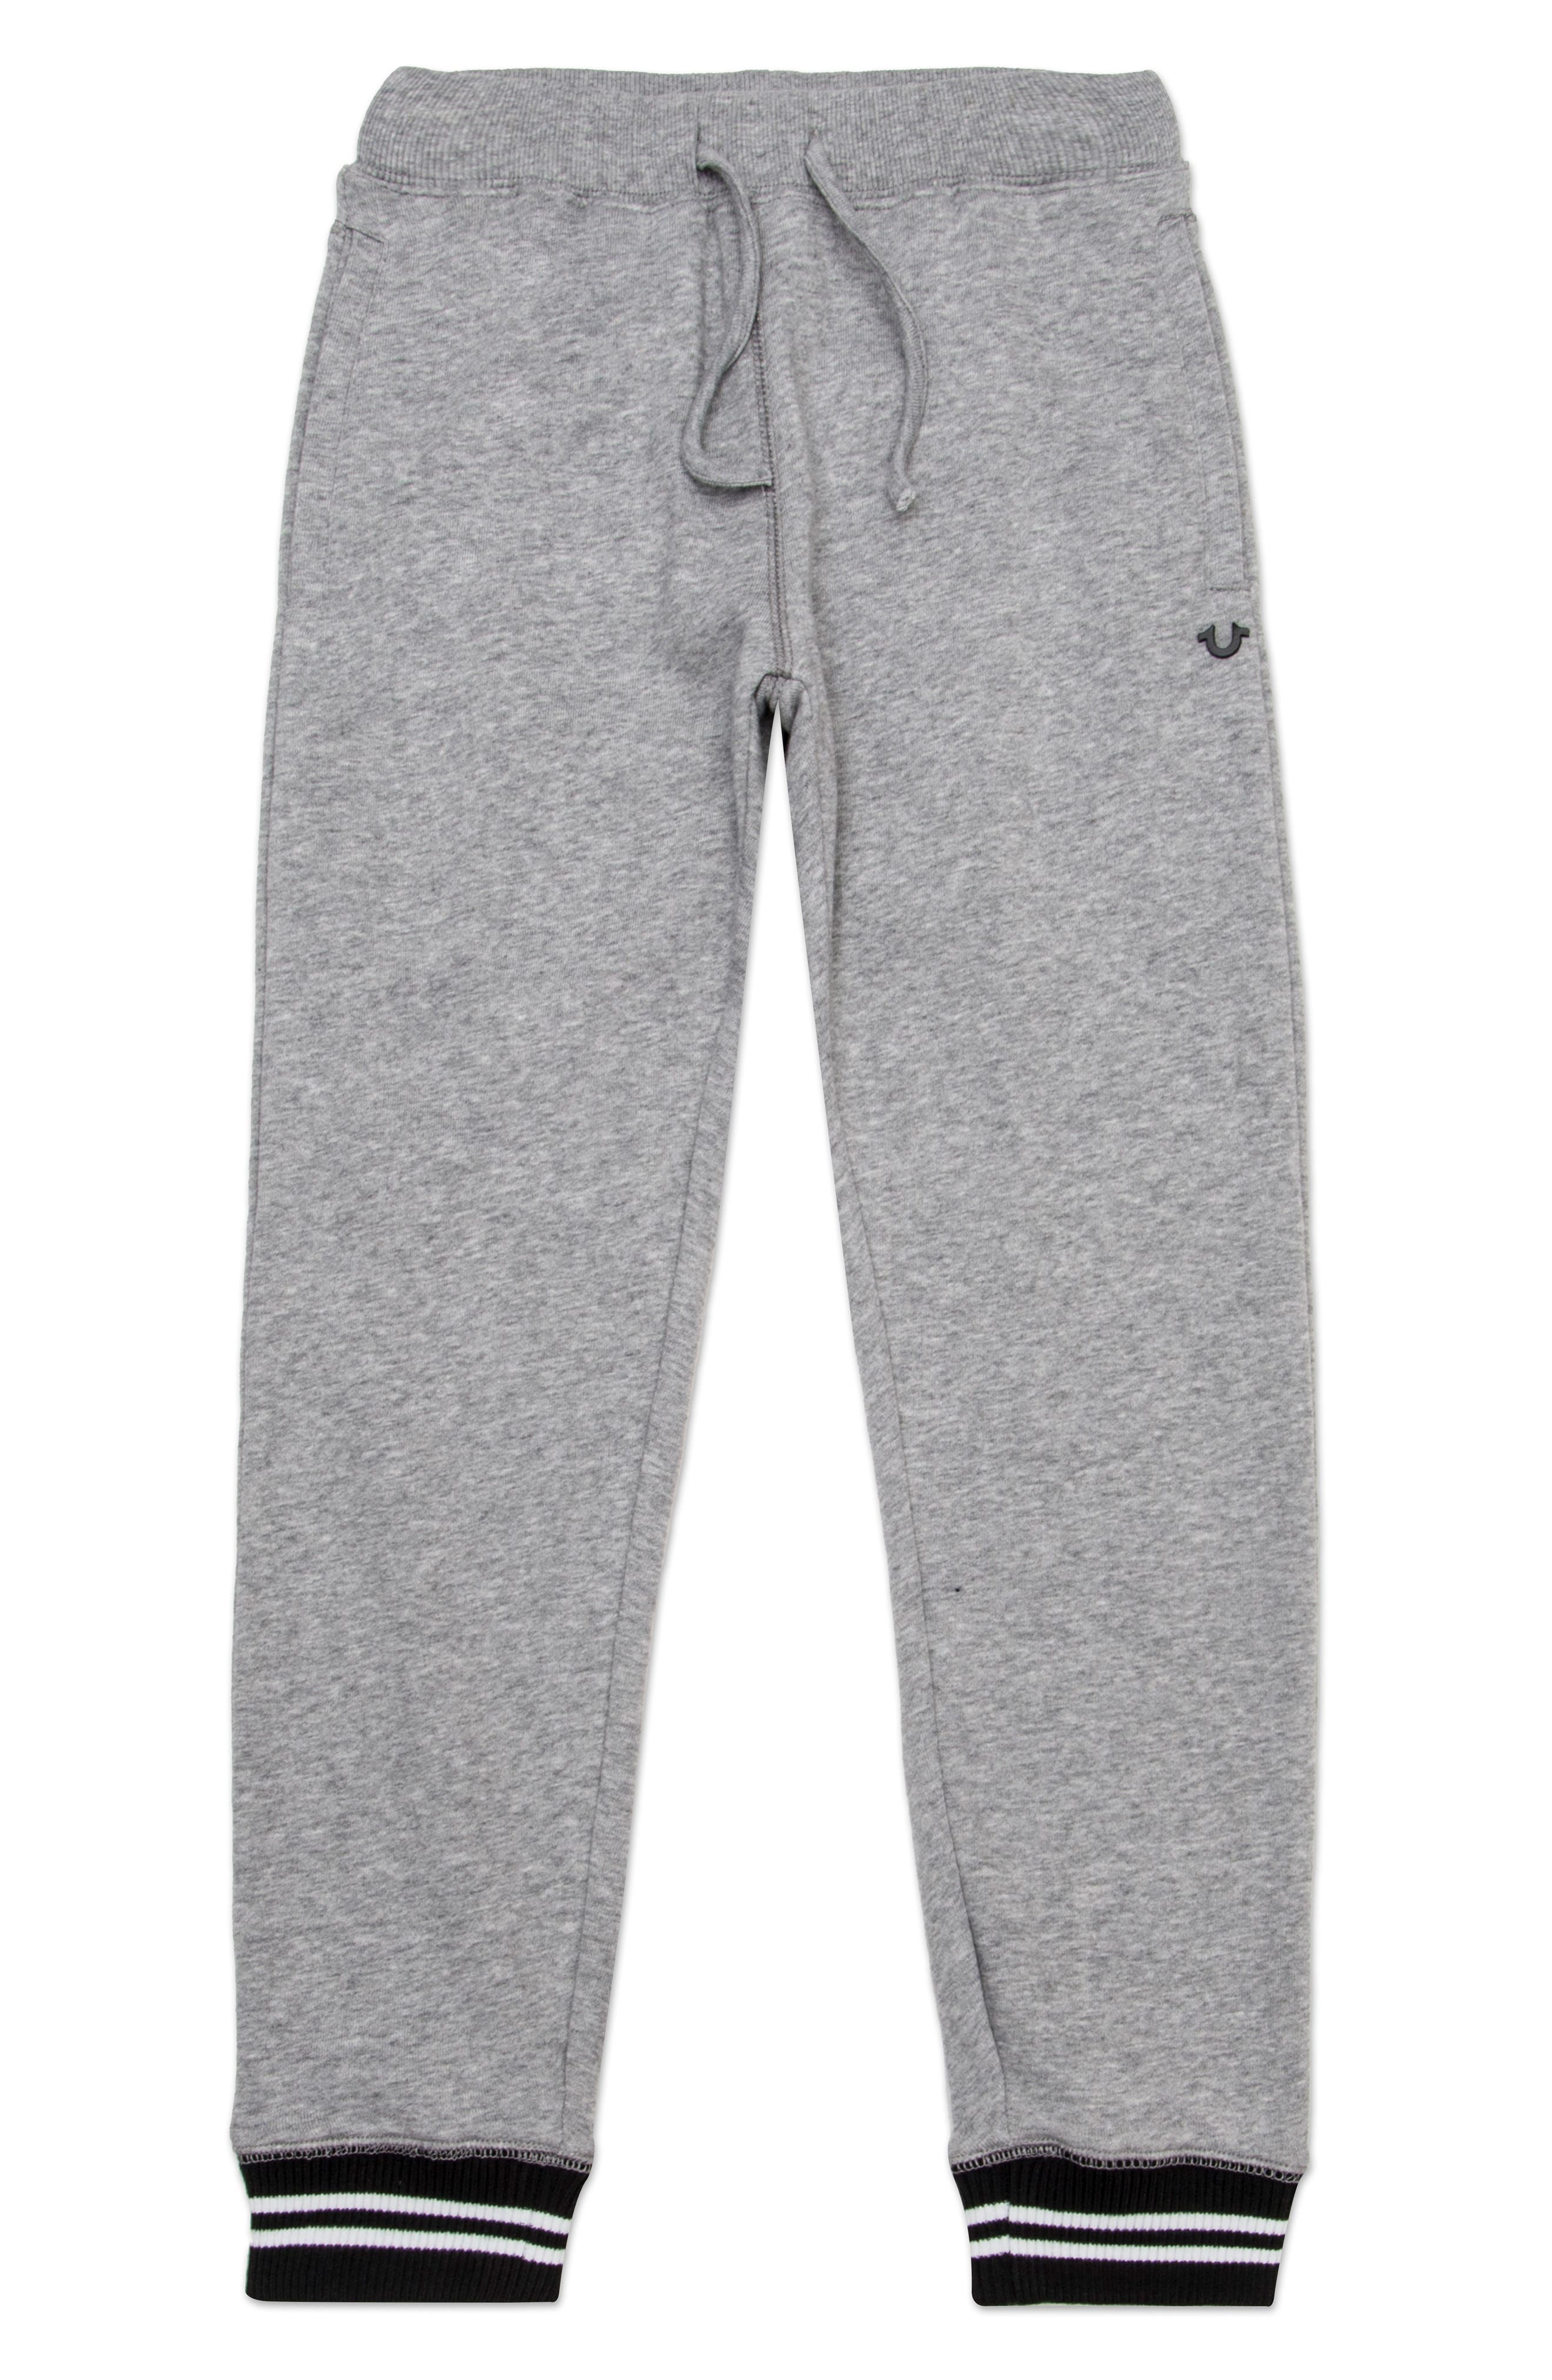 Main Image - True Religion Brand Jeans Tipped Sweatpants (Toddler Boys & Little Boys)